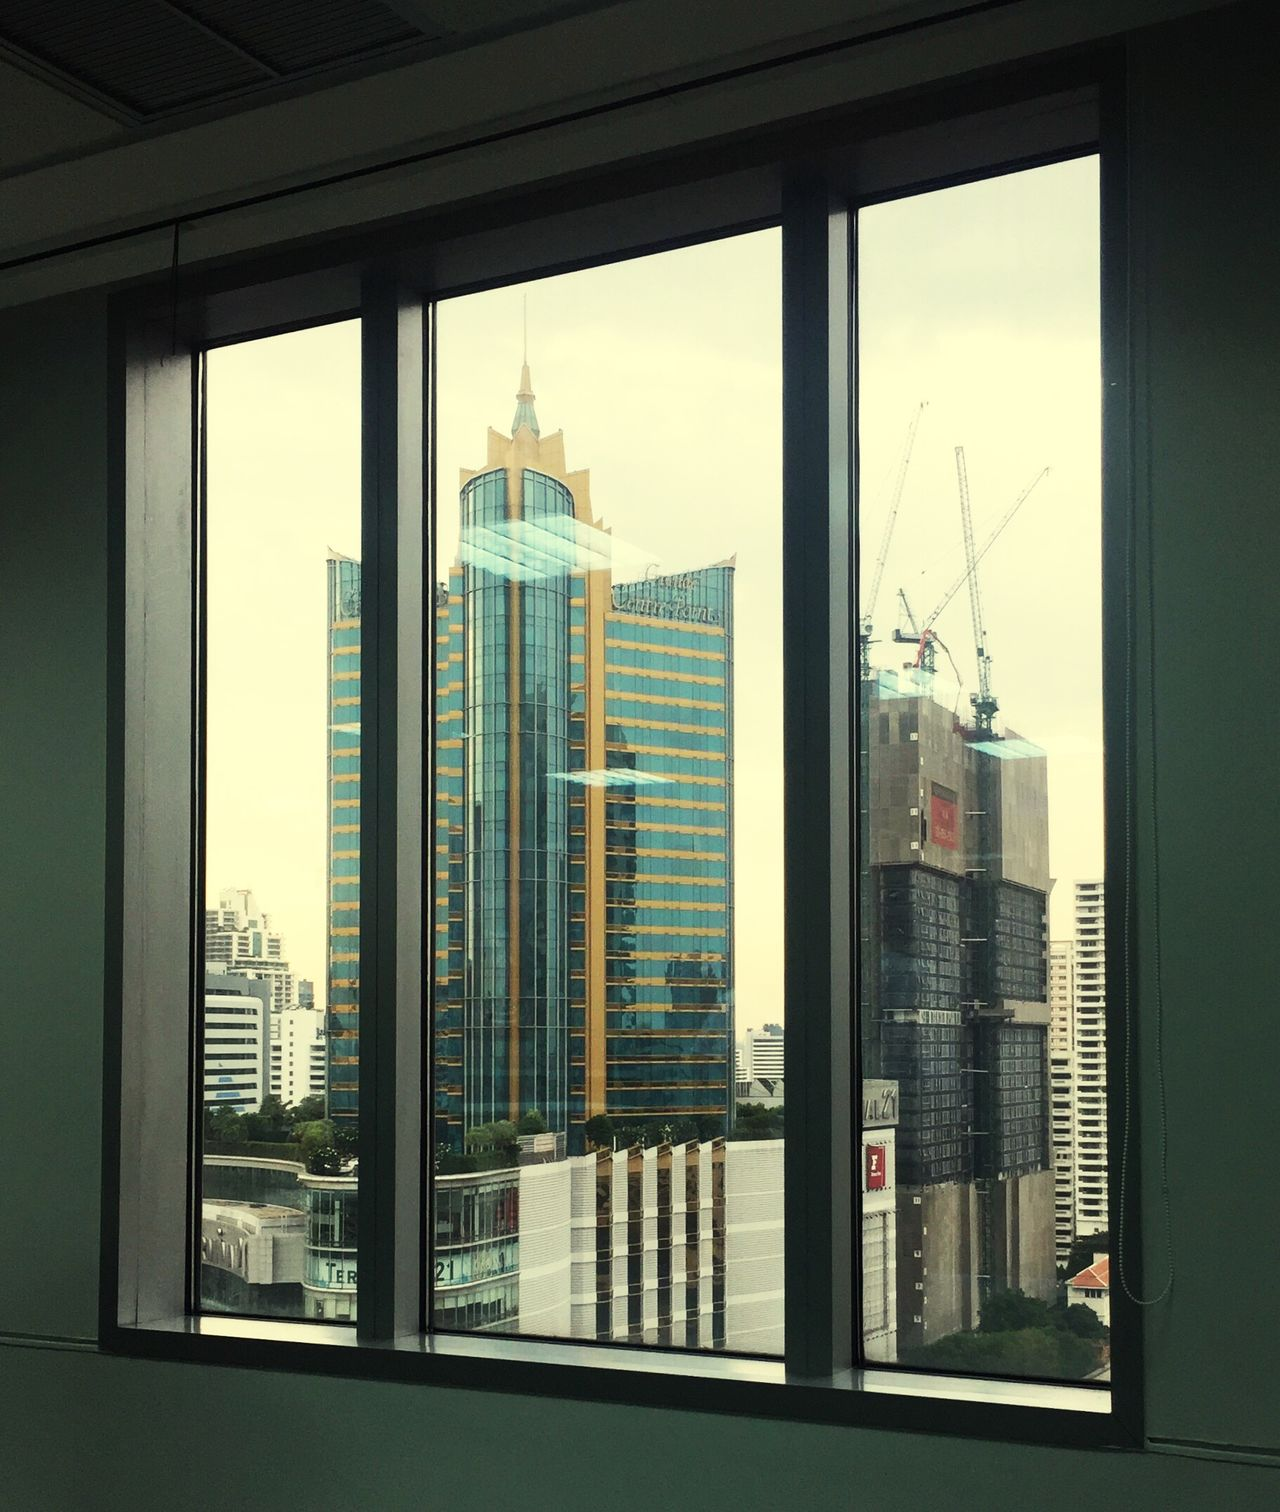 window Architecture Built Structure Skyscraper Window Building Exterior City Sky Cityscape Ofice Bangkok Thailand